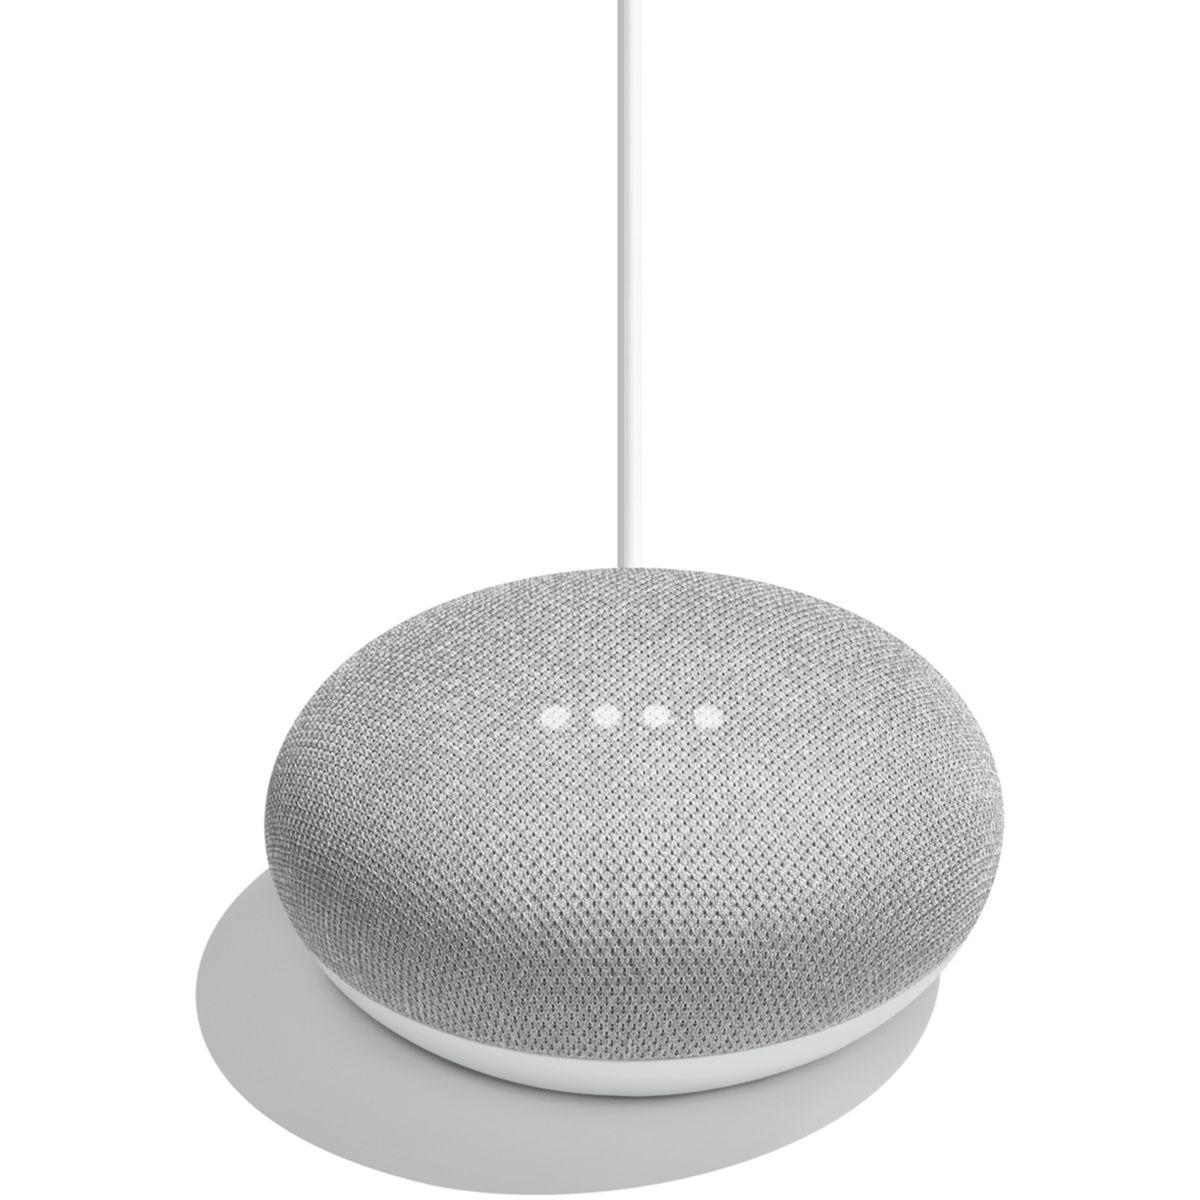 Assistant vocal google home mini - galet (photo)